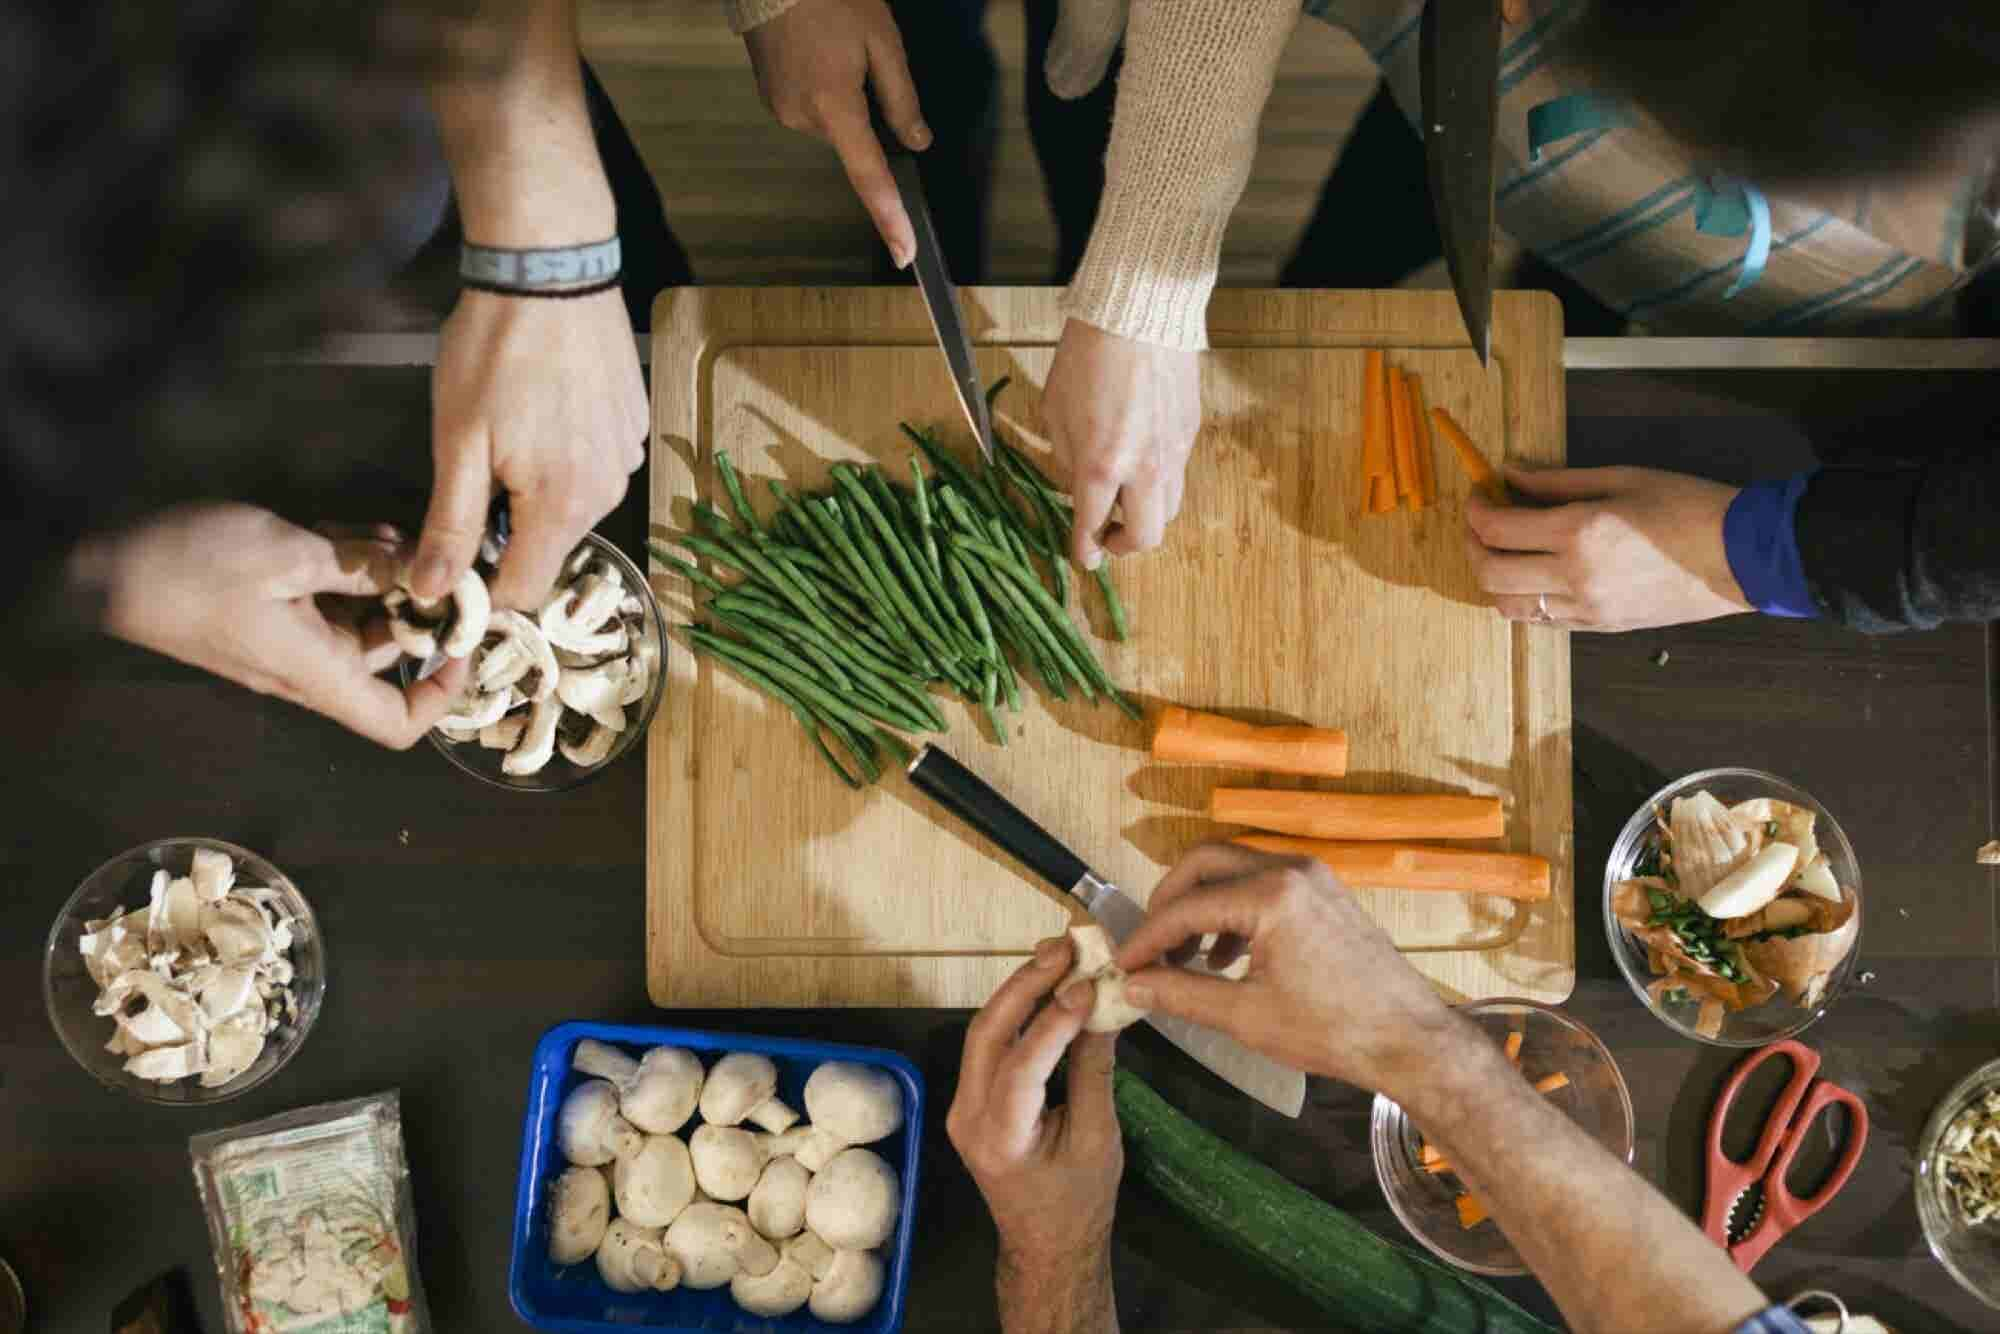 The Top 10 Best Cities to Start a Nutritionist Business